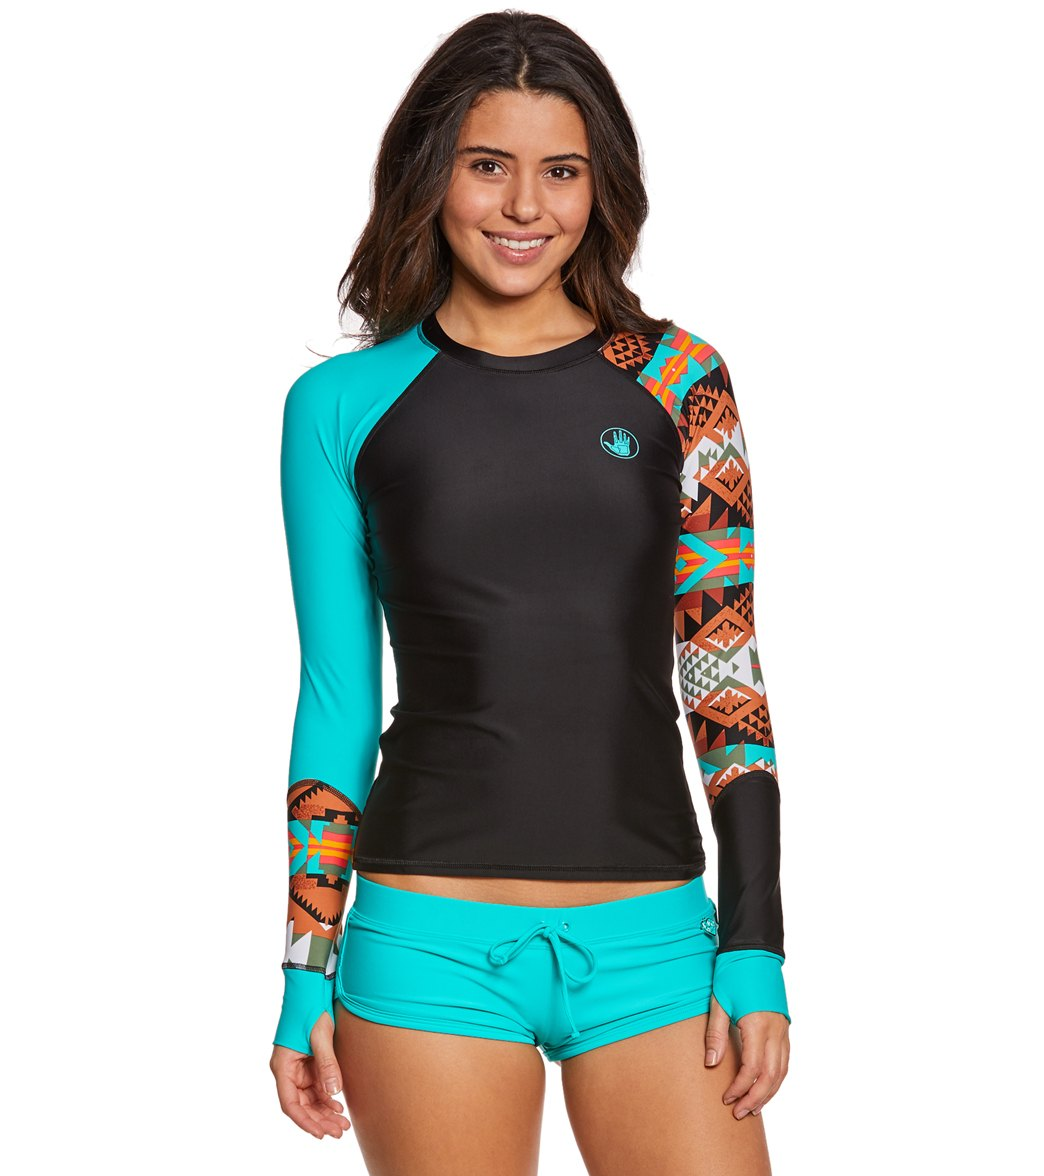 46c203ca57 Body Glove Women s Terra Sleek L S Rashguard at SwimOutlet.com ...